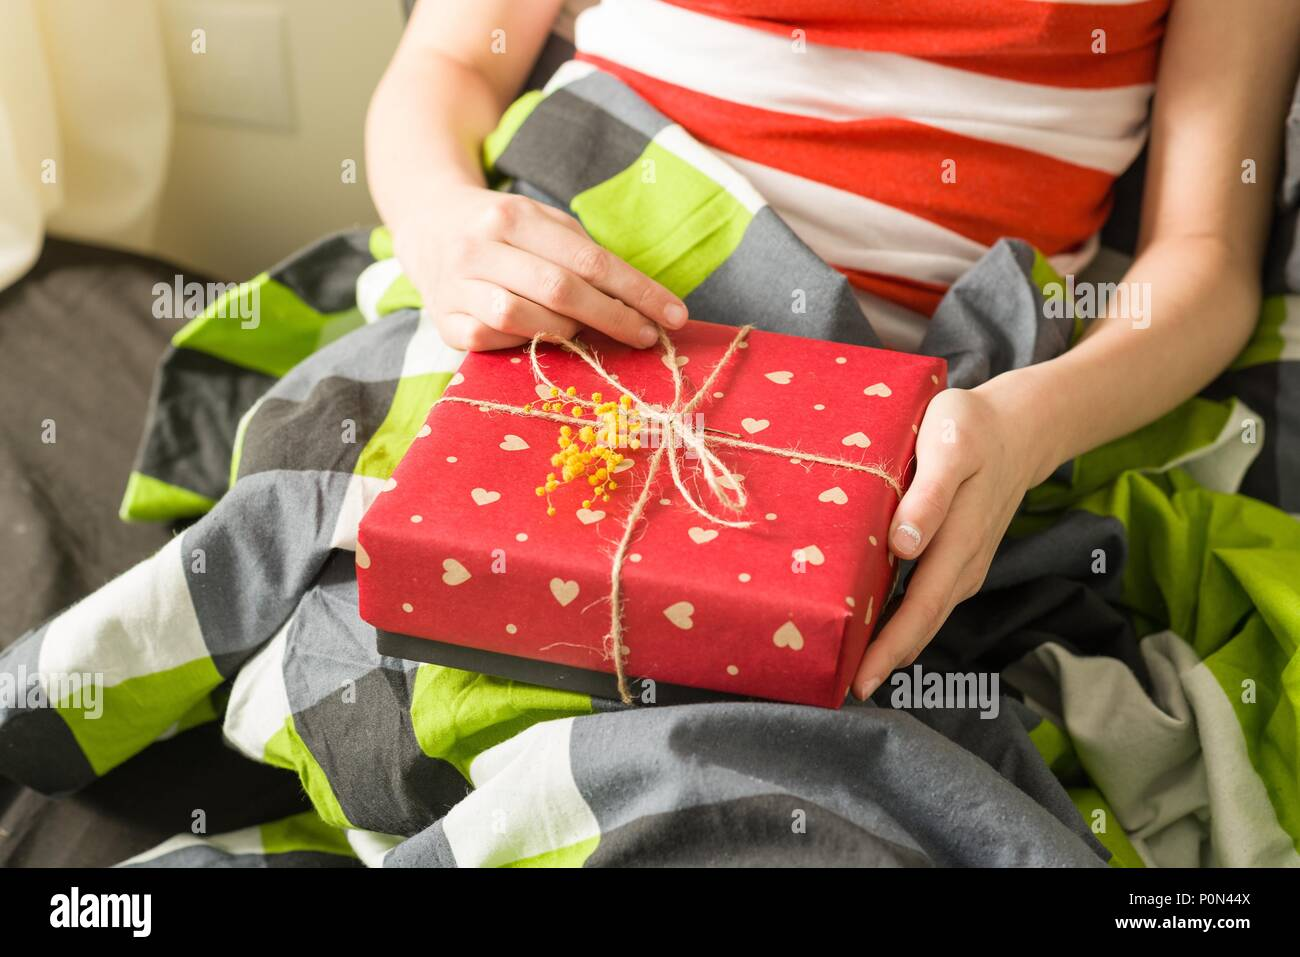 Gift in the hands. Packed in crafting paper with red hearts, decorated with a branch of yellow mimosa flowers. Spring gift - Stock Image